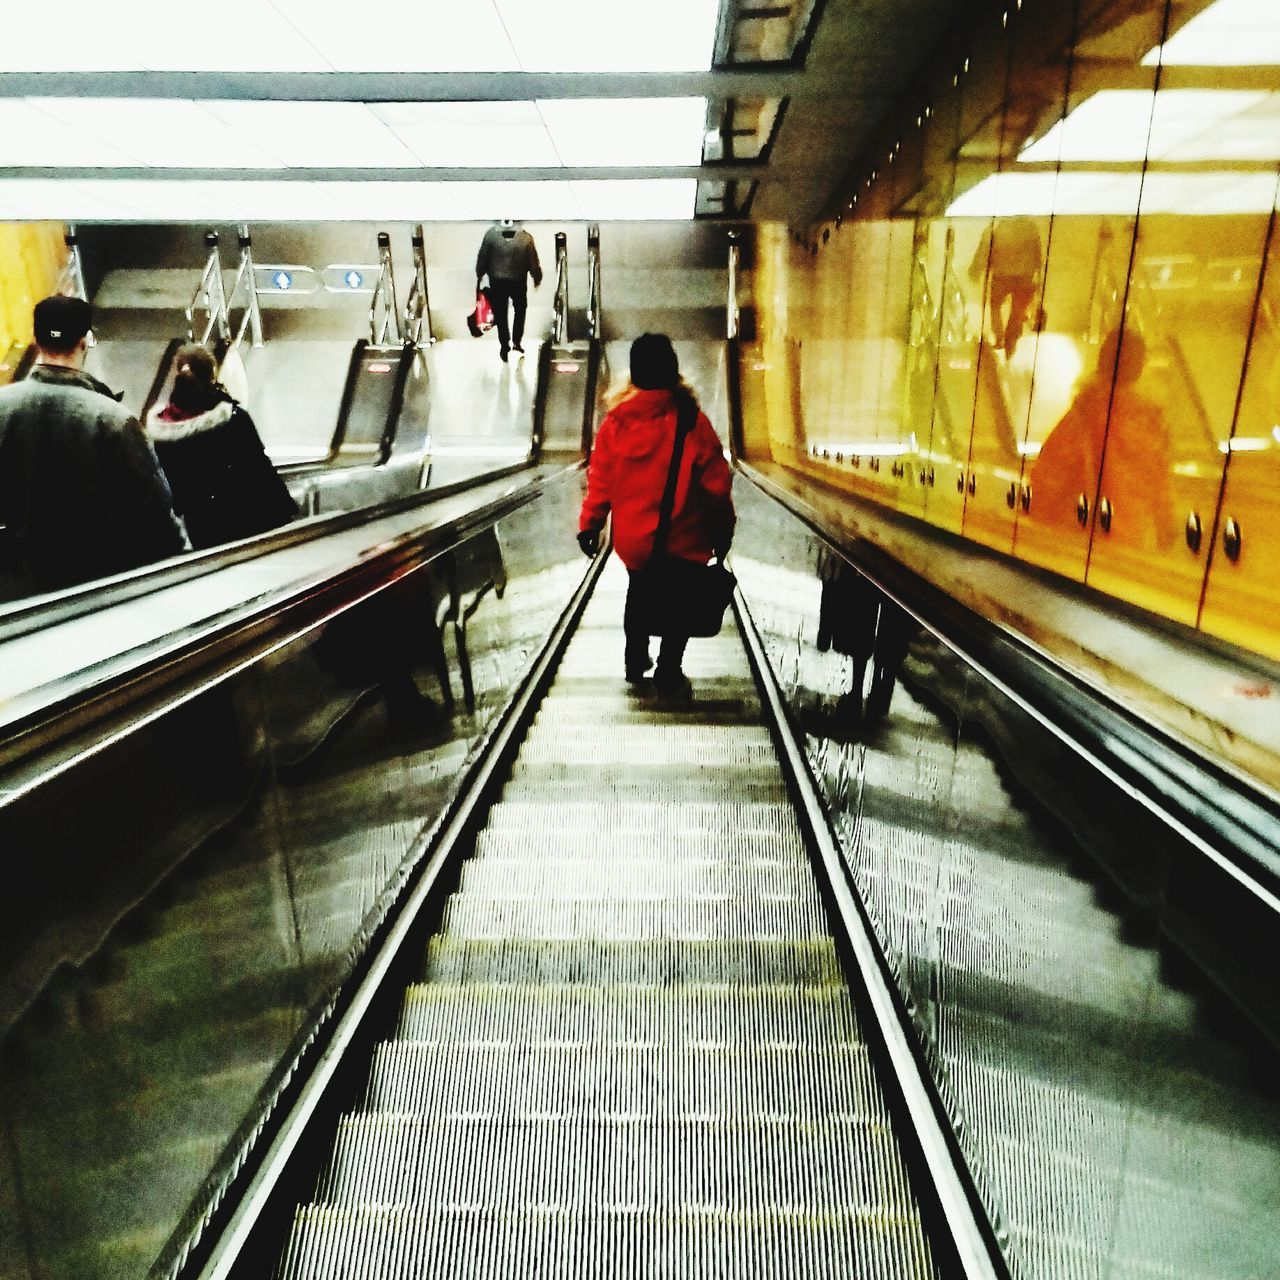 Real People Walking Indoors  Rear View Transportation Full Length Lifestyles Railroad Station Men One Person Passenger Women Railroad Station Platform Day Moving Walkway  Adults Only People Adult Only Men Wintertime Metro Subway Underground Budapest